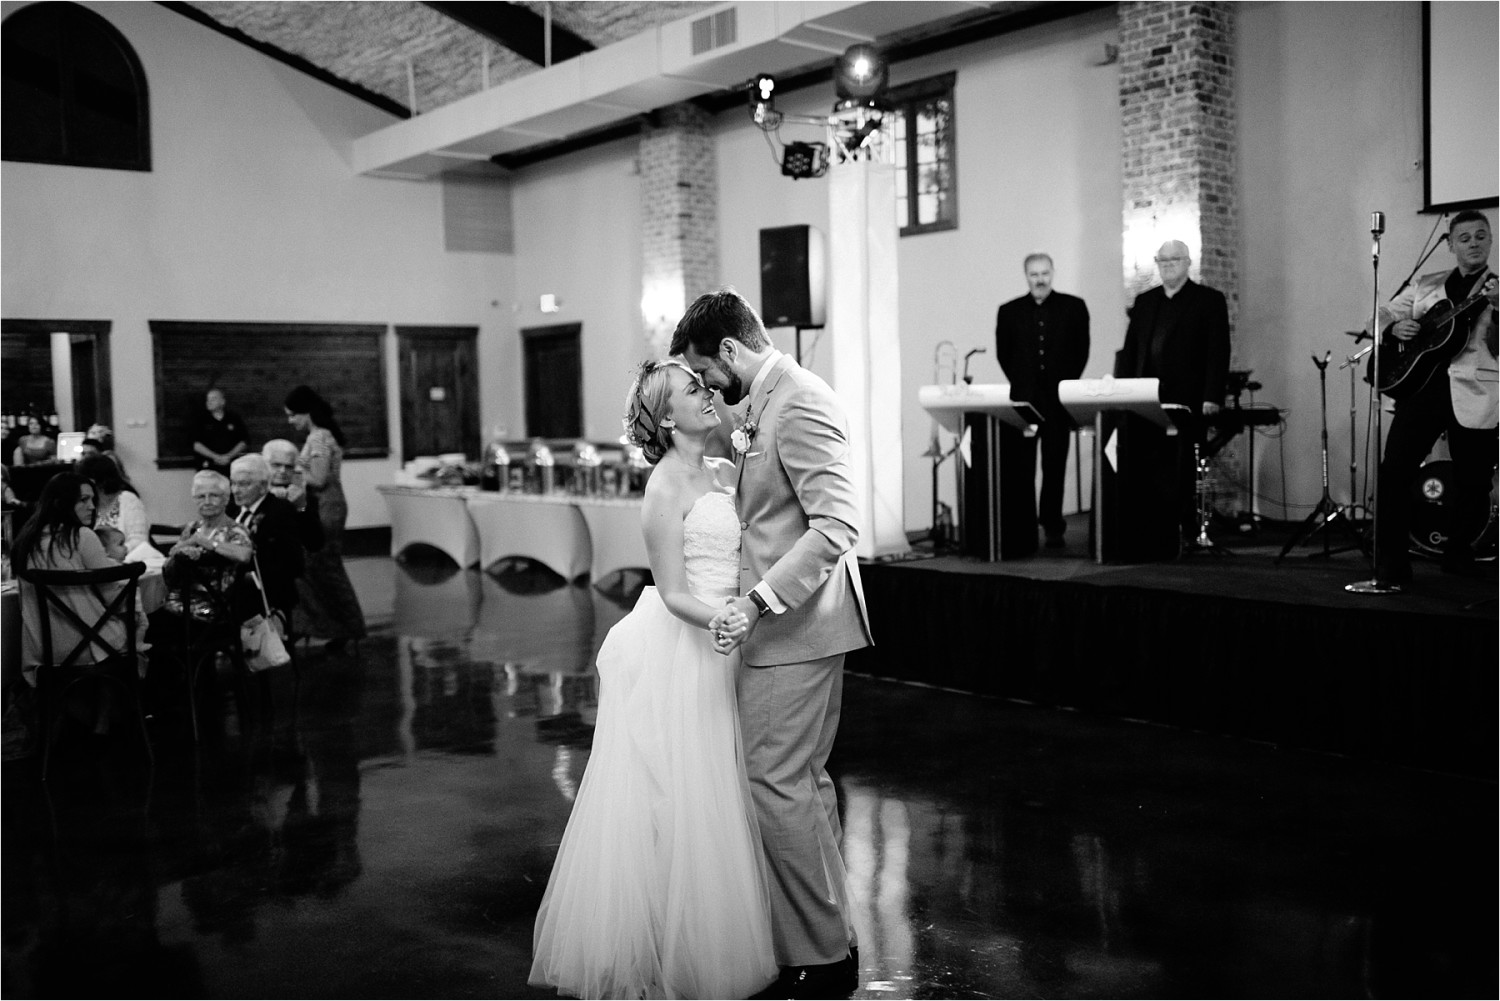 brad-lara-__-a-grey-and-blush-pink-intimate-wedding-at-hidden-waters-event-center-in-waxahachie-tx-by-north-texas-wedding-photographer-rachel-meagan-photography-_-080